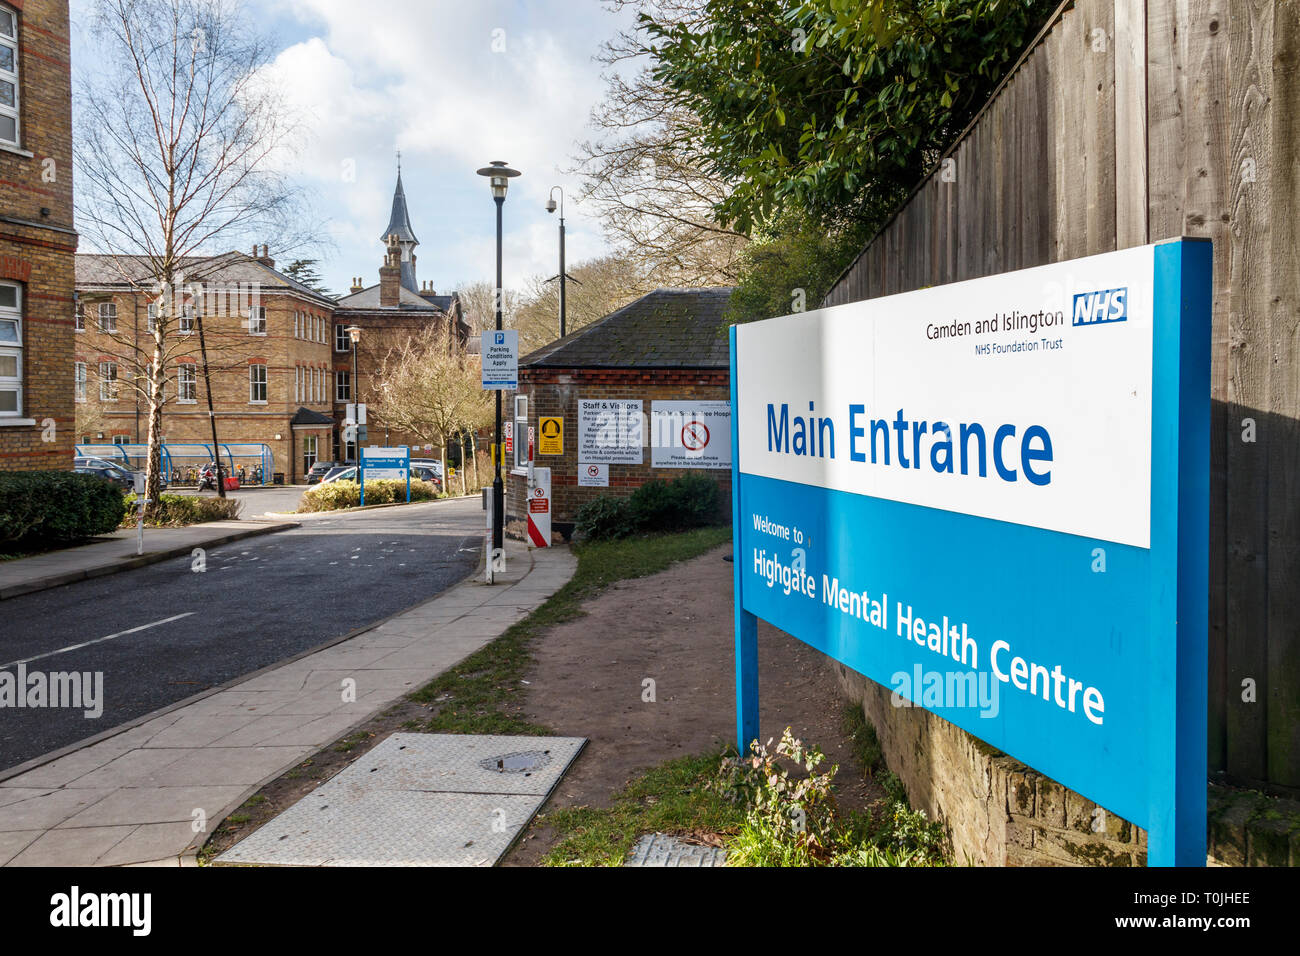 The entrance to Highgate Mental Health Centre, part of Camden and Islington NHS Trust, Dartmouth Park Hill, North London, UK - Stock Image